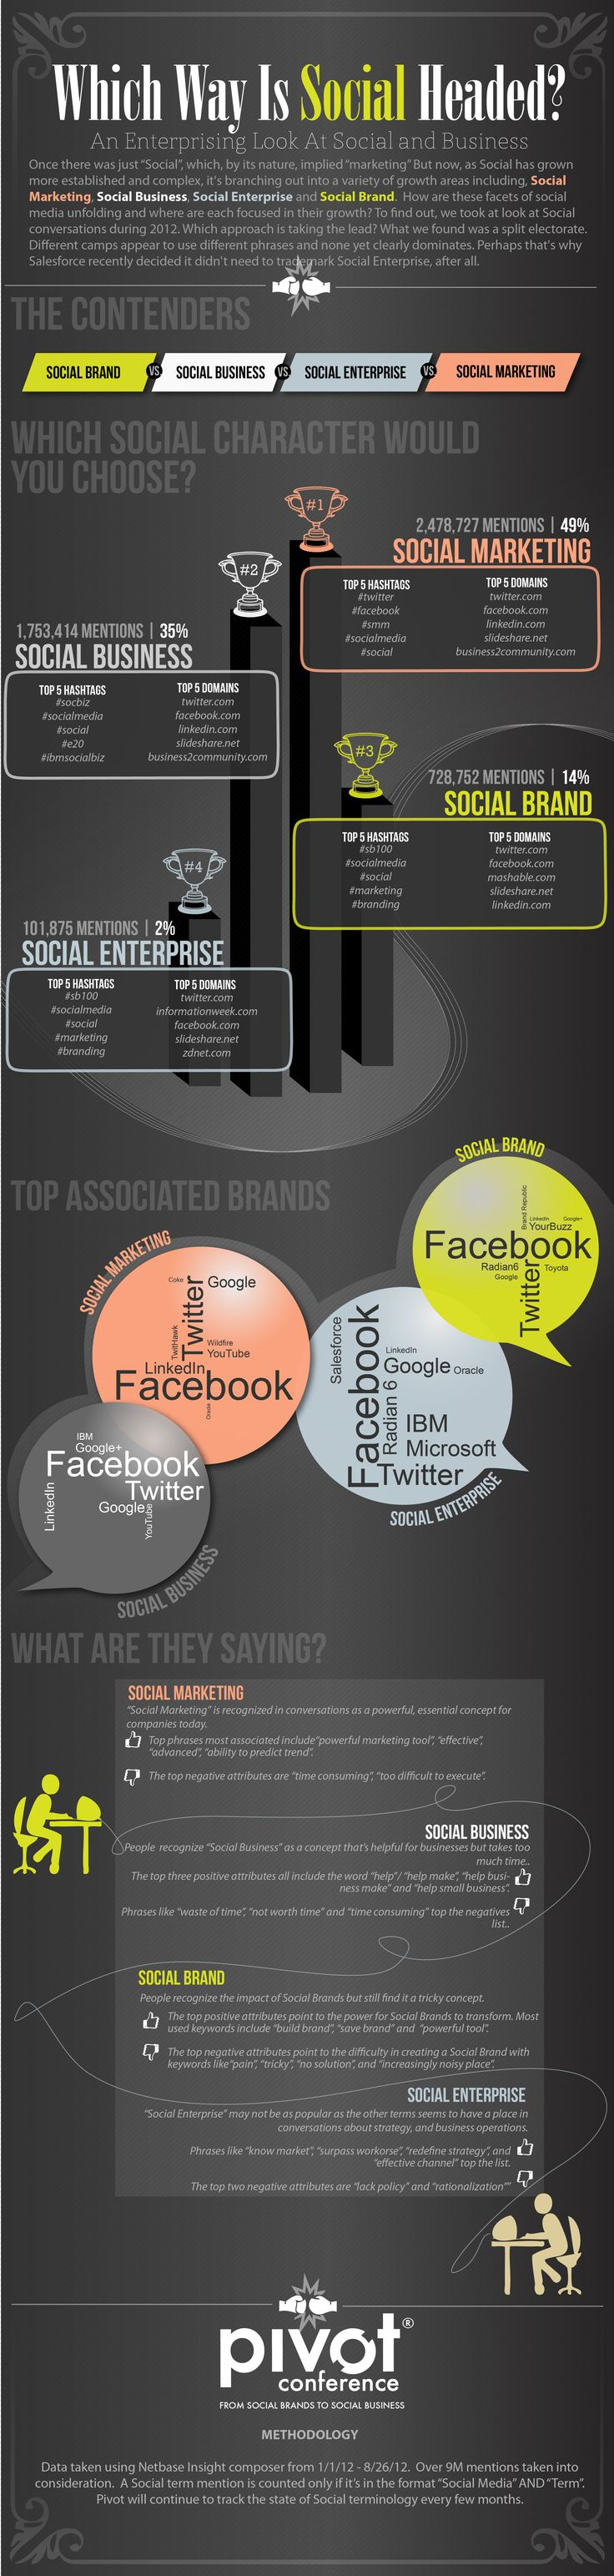 The Language of Social Media - The space between @ & www